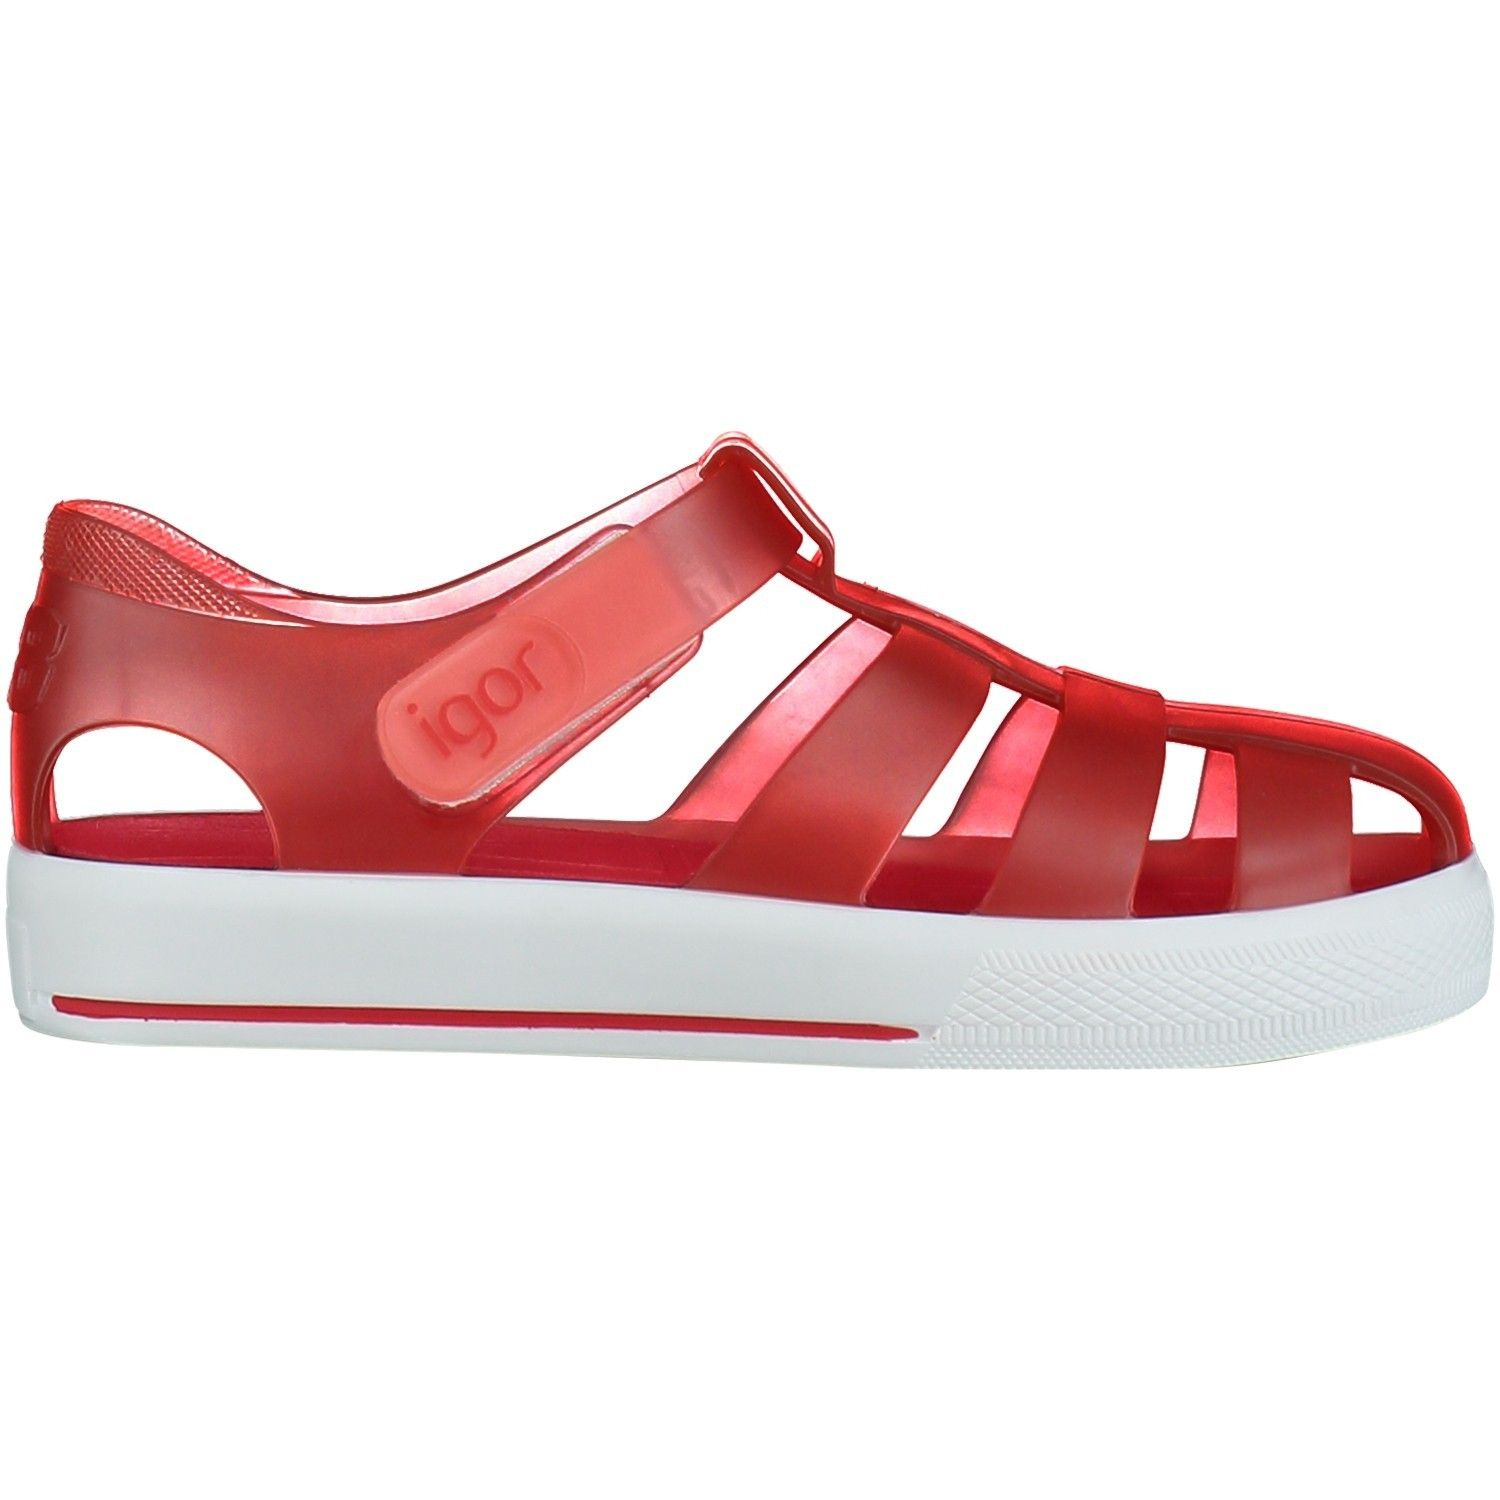 Picture of Igor S10171 kids sandals red